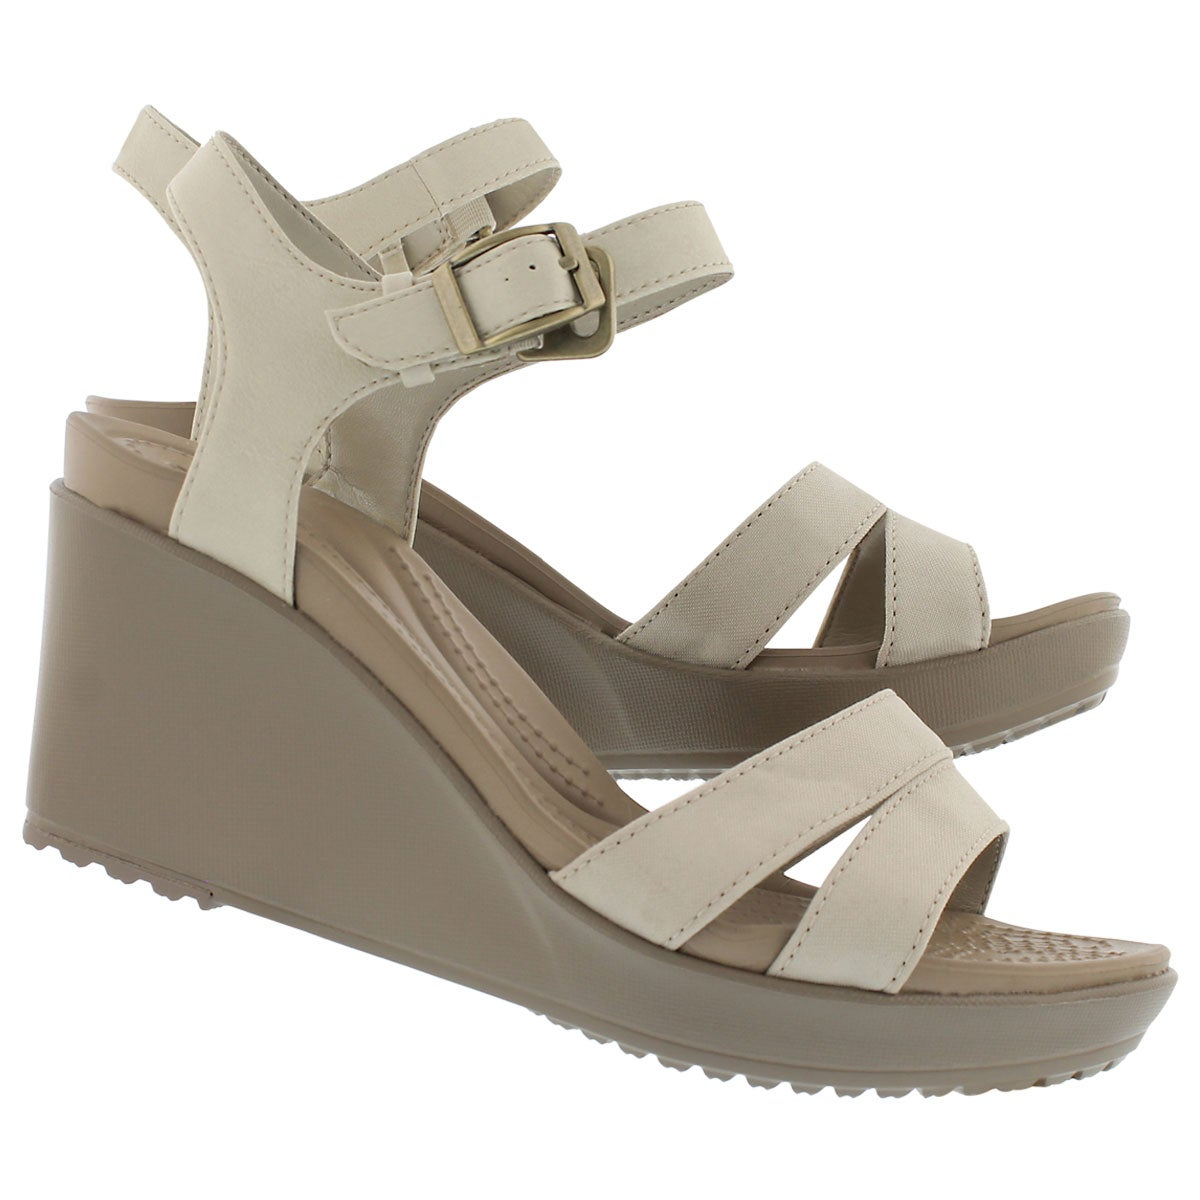 Lds Leigh II oatmeal/kki wedge sandal